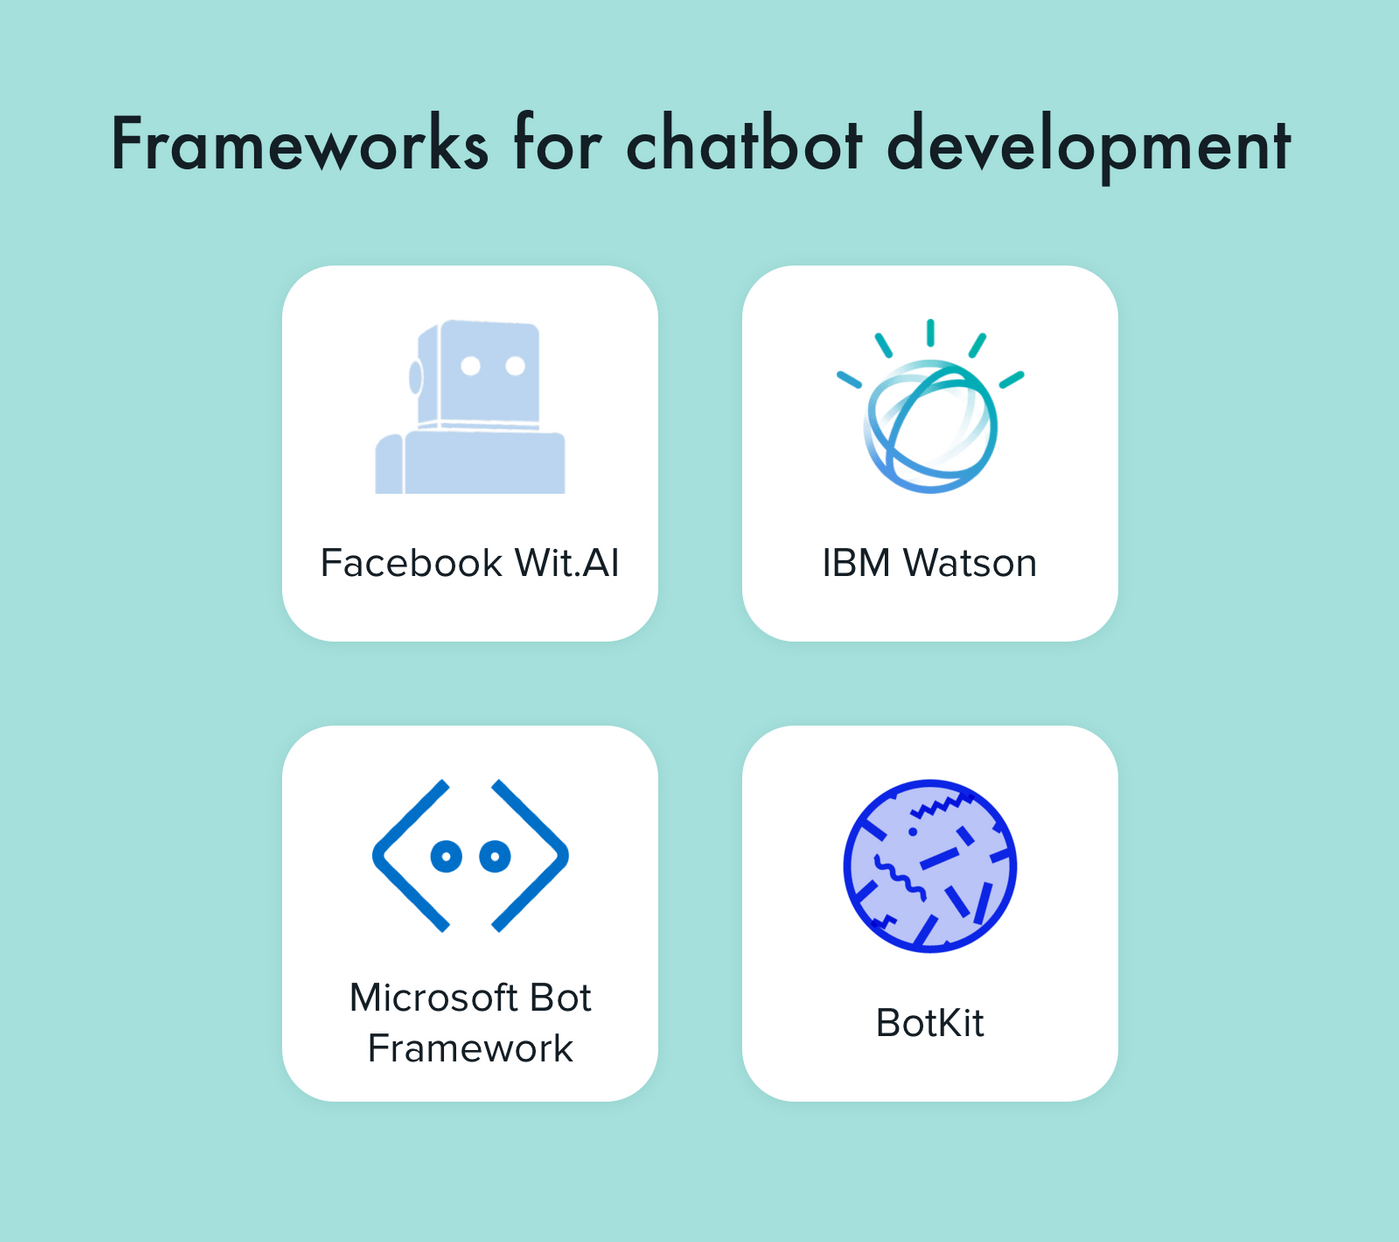 Frameworks for chatbot development